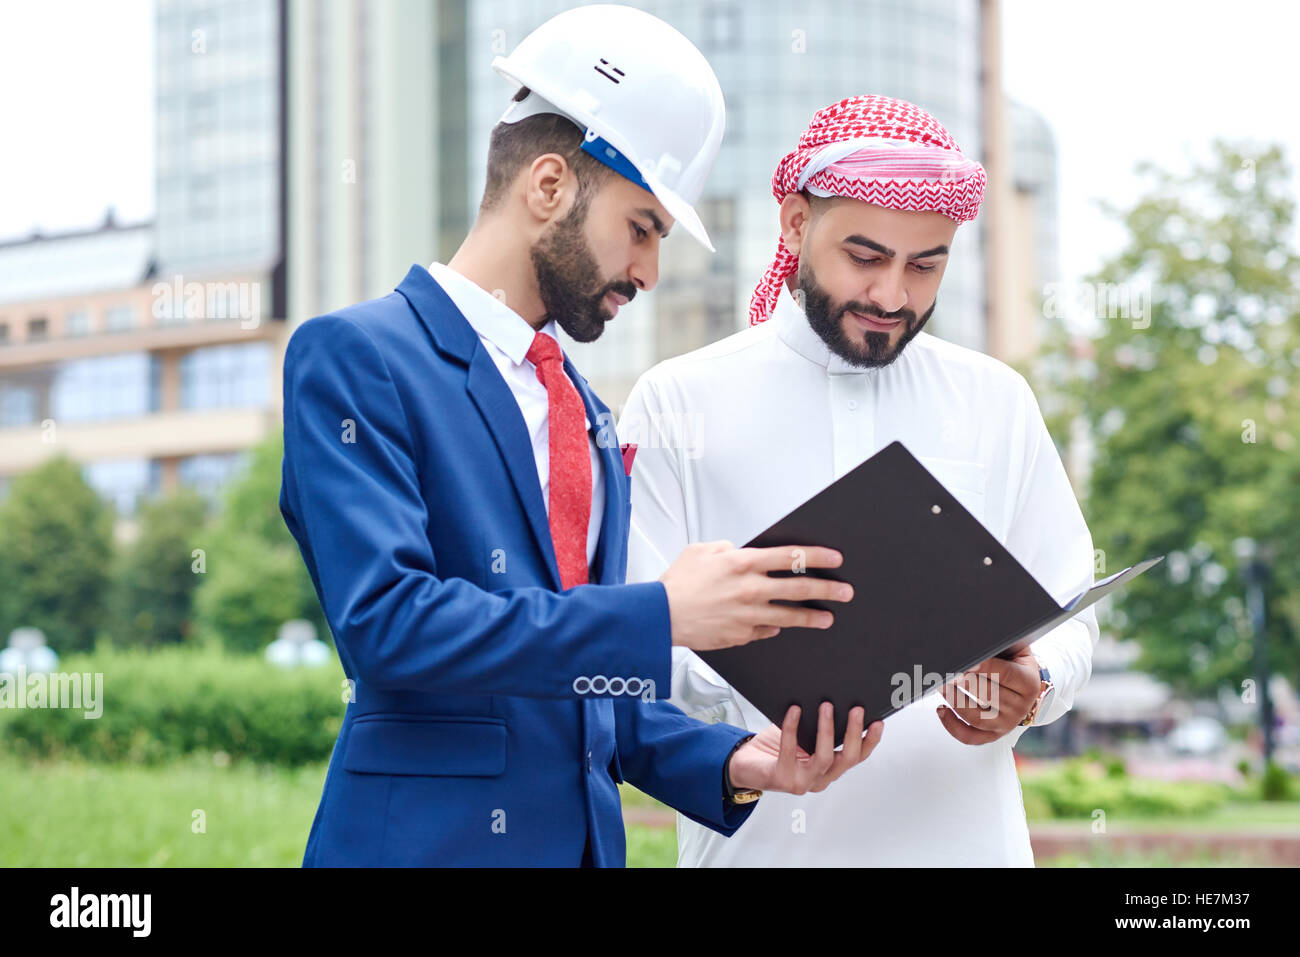 Signing the contract. Arab businessman checking contract papers with his architect - Stock Image